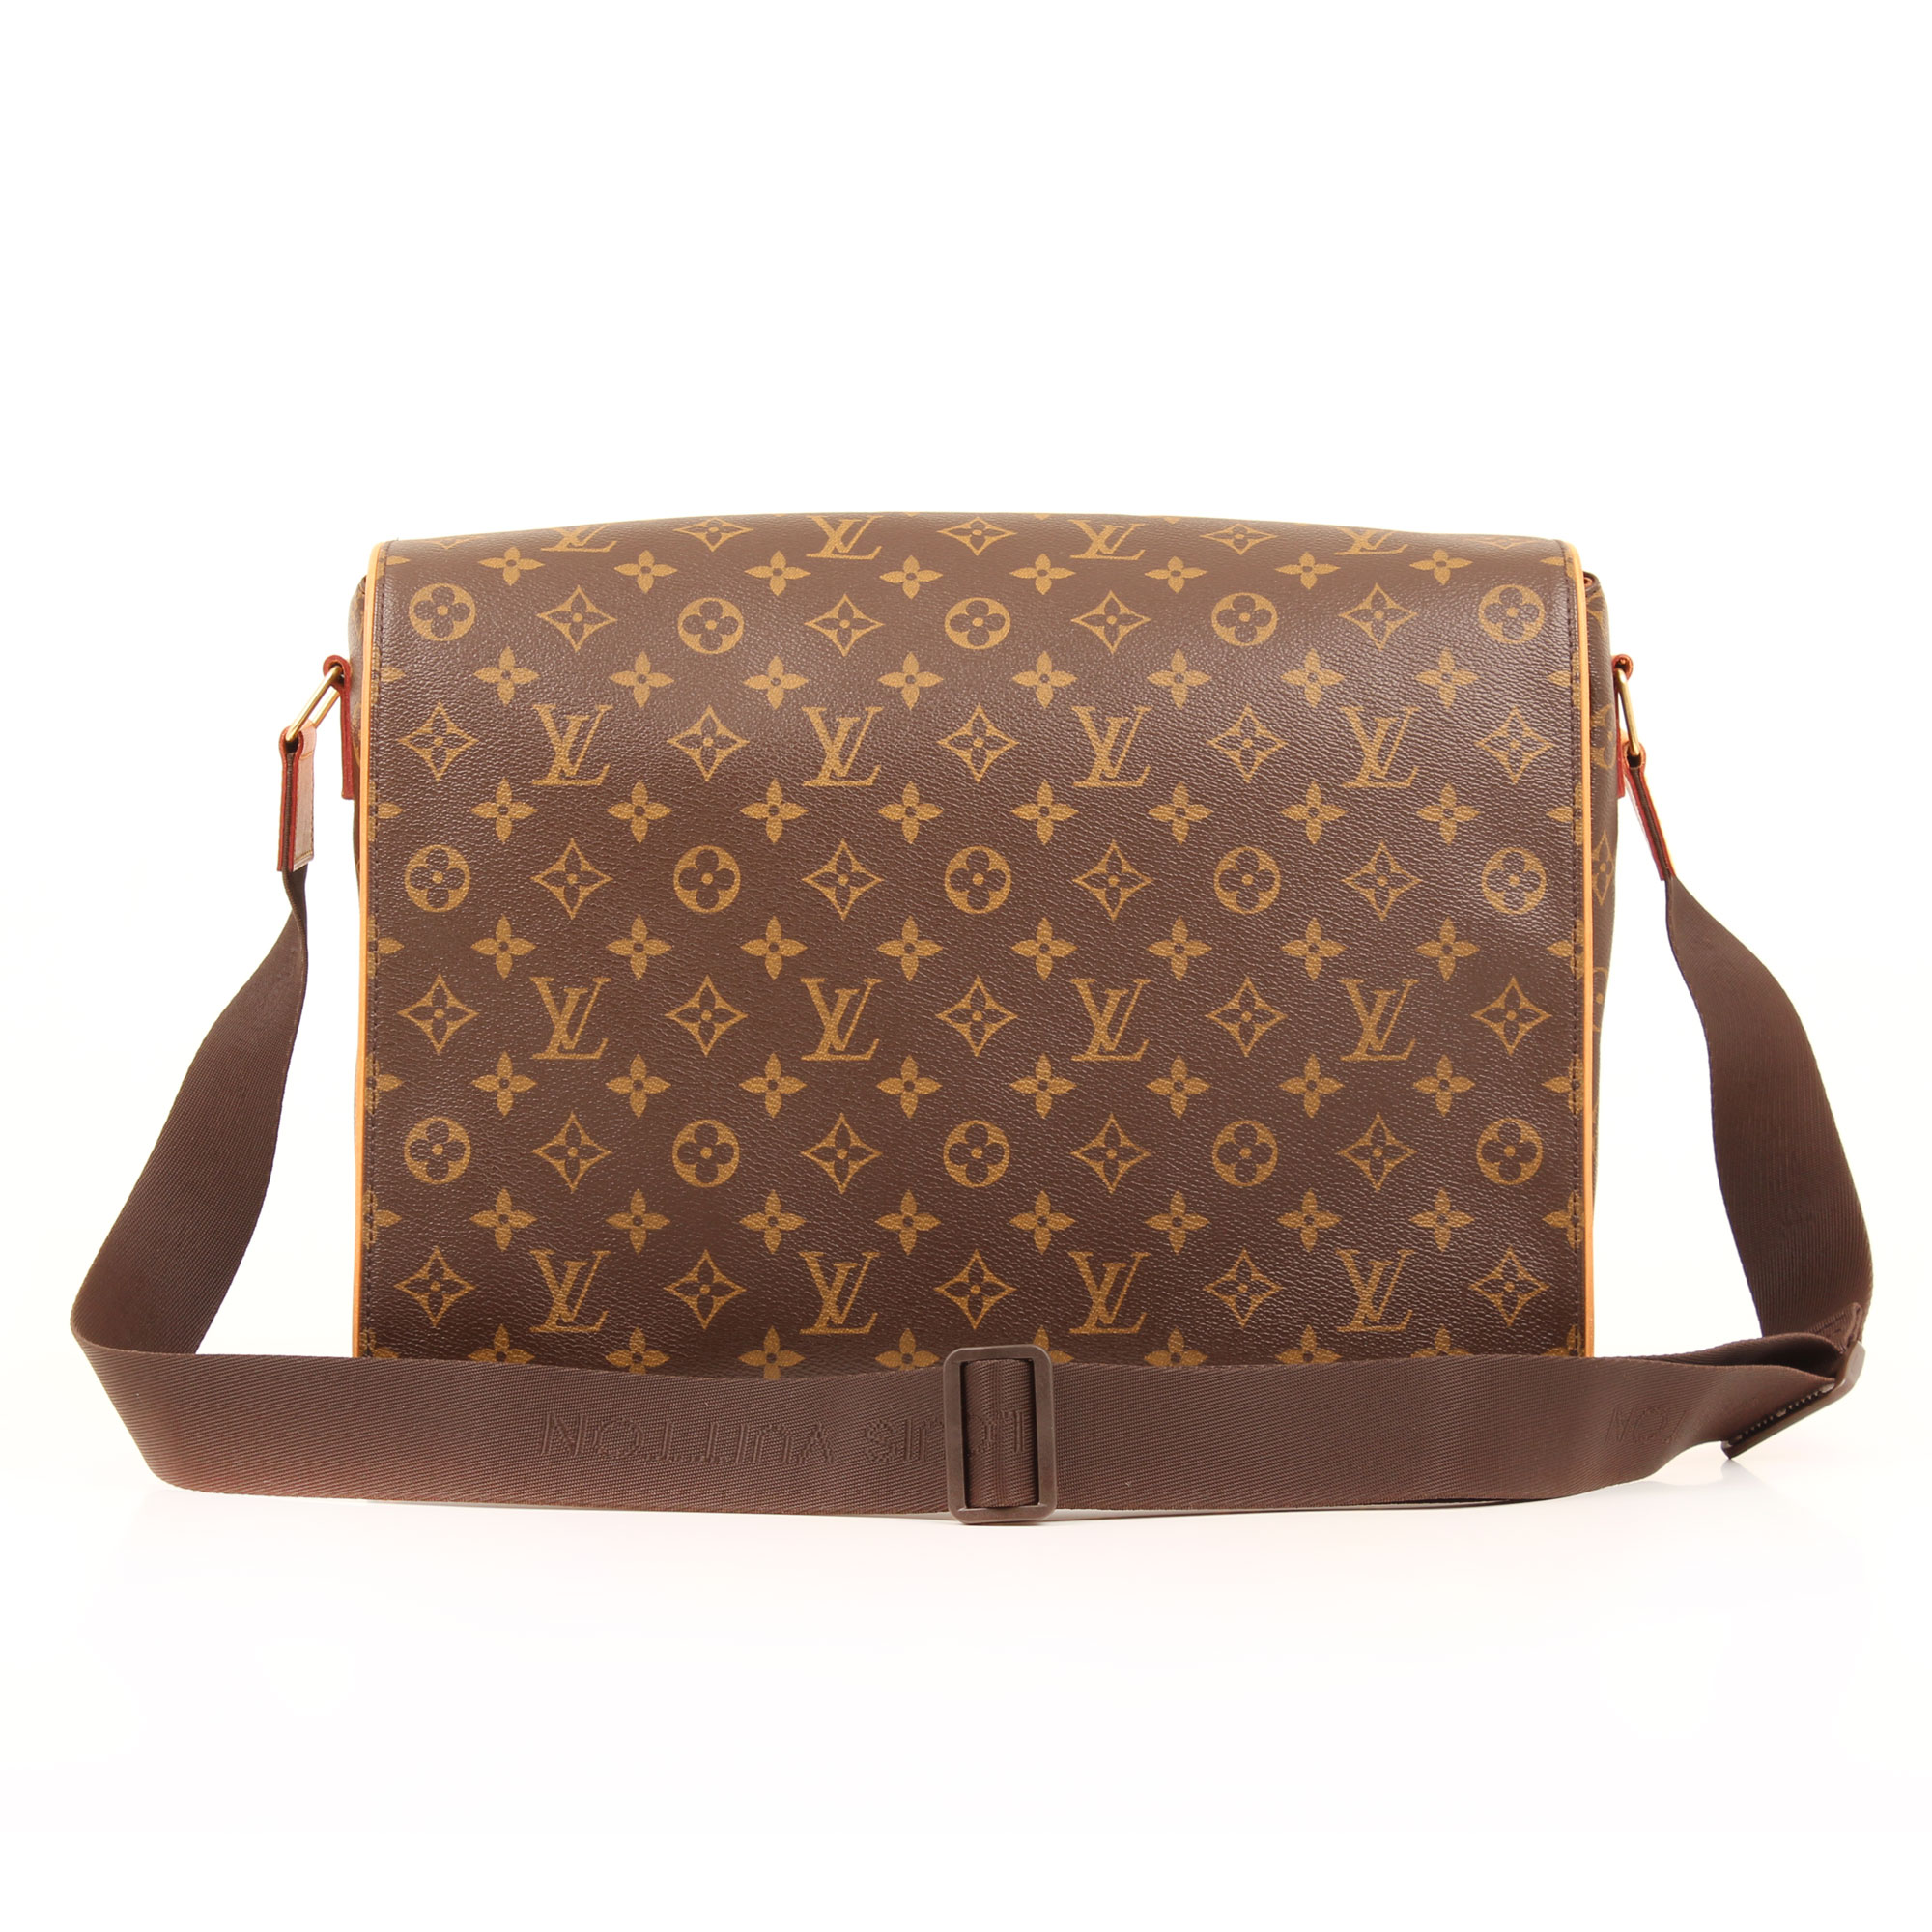 Imagen frontal de la bandolera louis vuitton abbesses monogram